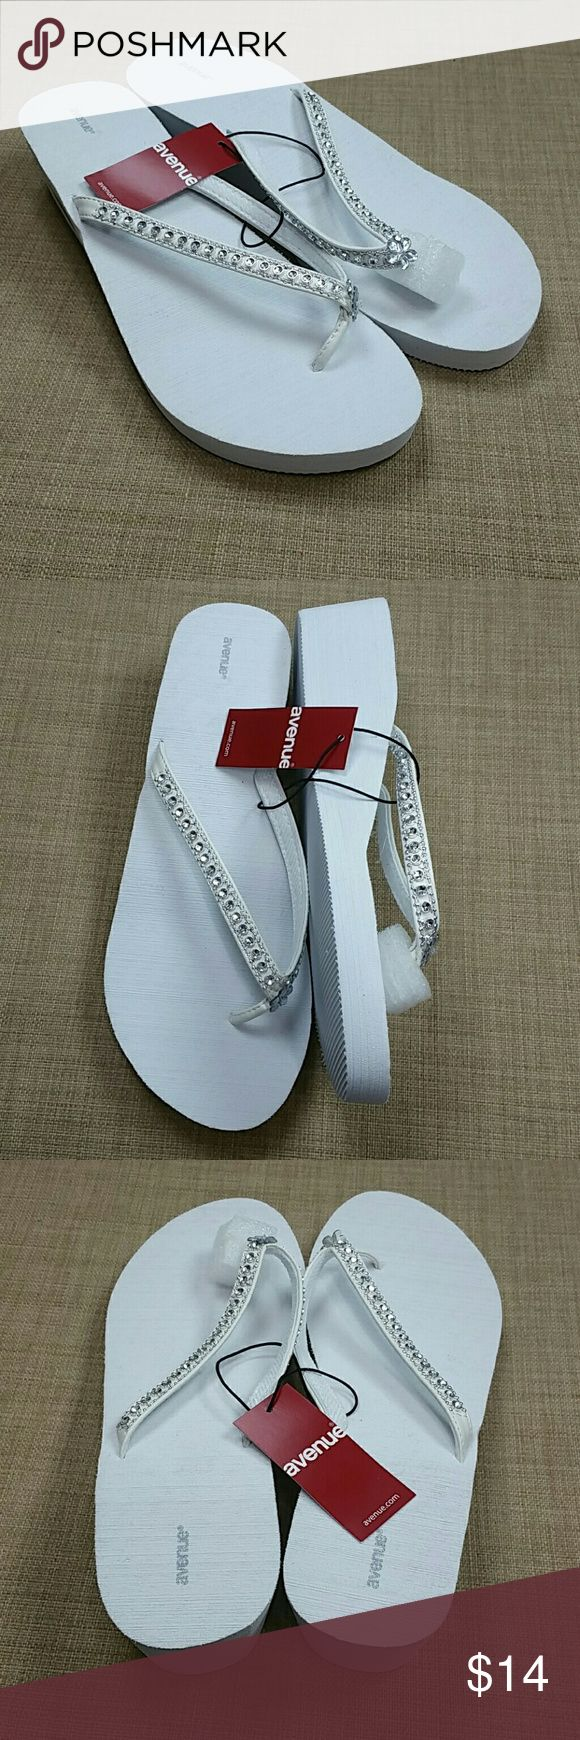 "Avenue White Wedge Flip Flops Size 10W 11W They are a size 11w/12w wide width. Has 2"" heel. Add to a bundle to receive 20% off 3 or more items. Offers welcomed. Avenue Shoes"